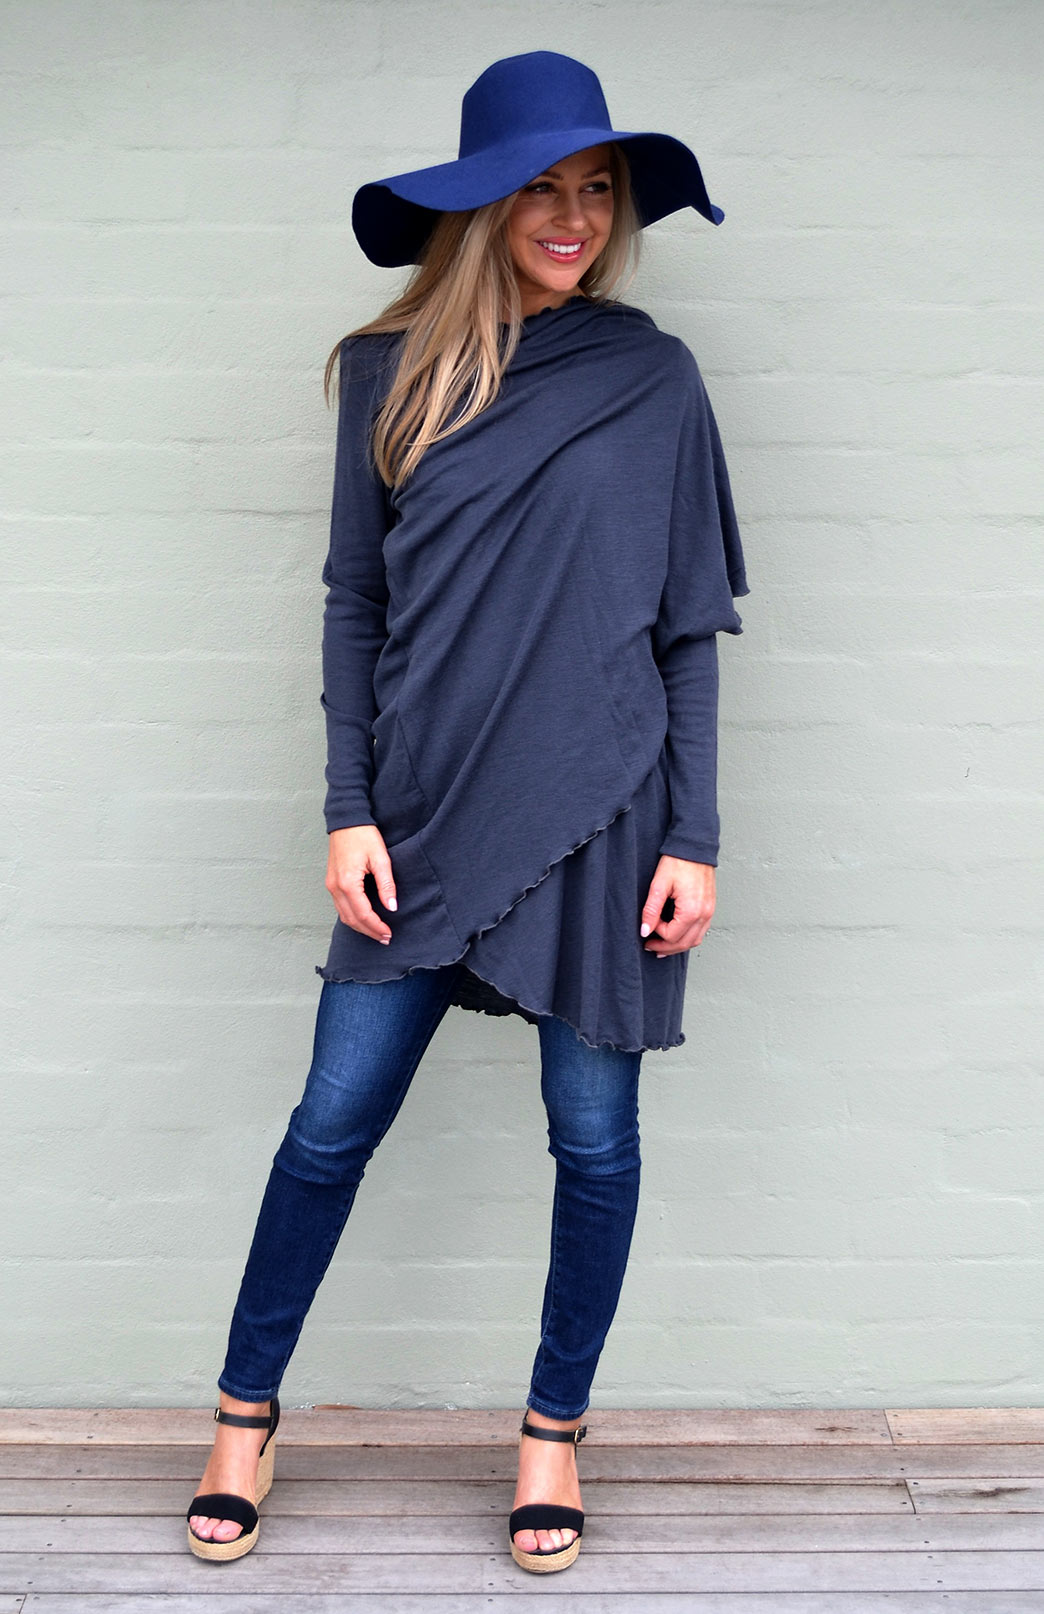 Swing Cardigan - Women's Steel Grey Long Sleeved Wrap Around Merino Wool Swing Cardigan - Smitten Merino Tasmania Australia